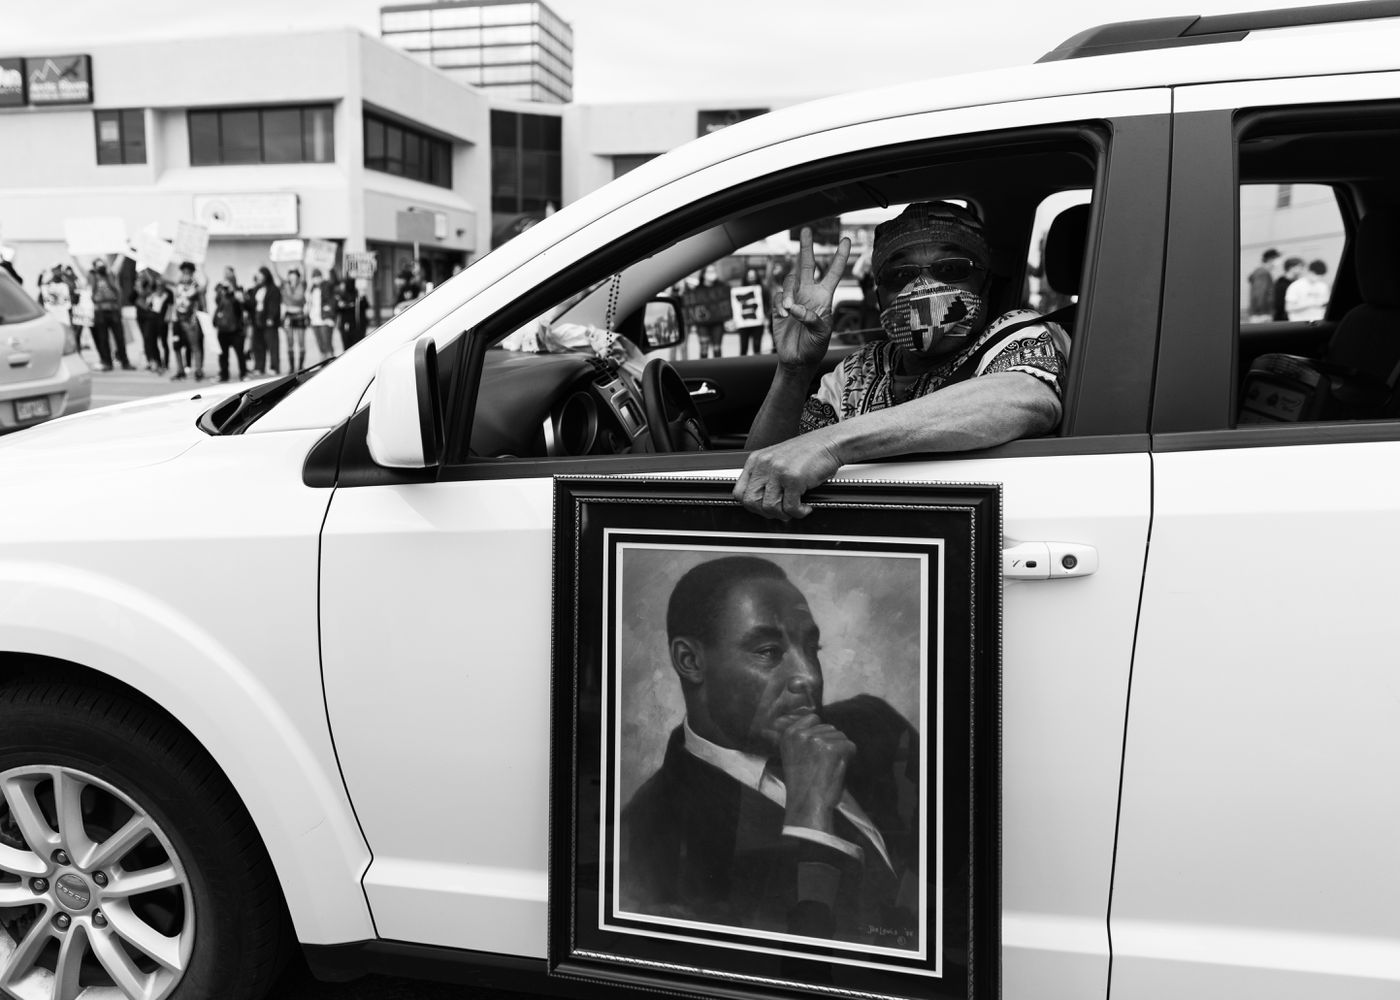 Photograph by Jovell Rennie, 2020 Cal Williams holding a portrait of Martin Luther King Jr. at a Black Lives Matter protest, Anchorage, 2020